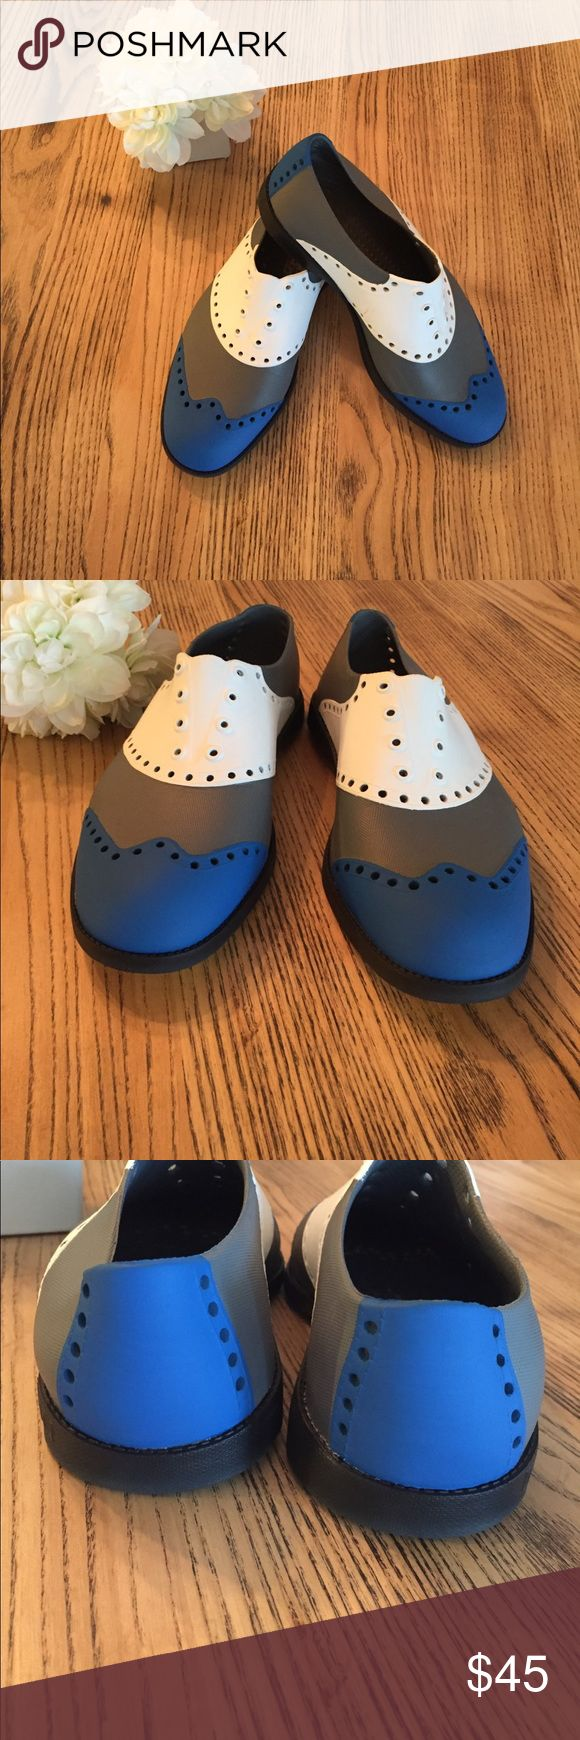 Unisex Biion golf shoes men's 4/woman's 6 Unisex Biion golf shoes are lightweight and breathable. Designed to look like wing tip shoes. Grips on soles for traction in wet grass. Pre owned, worn twice, excellent condition. Men's size 4 Woman's 6 Biion Shoes Athletic Shoes